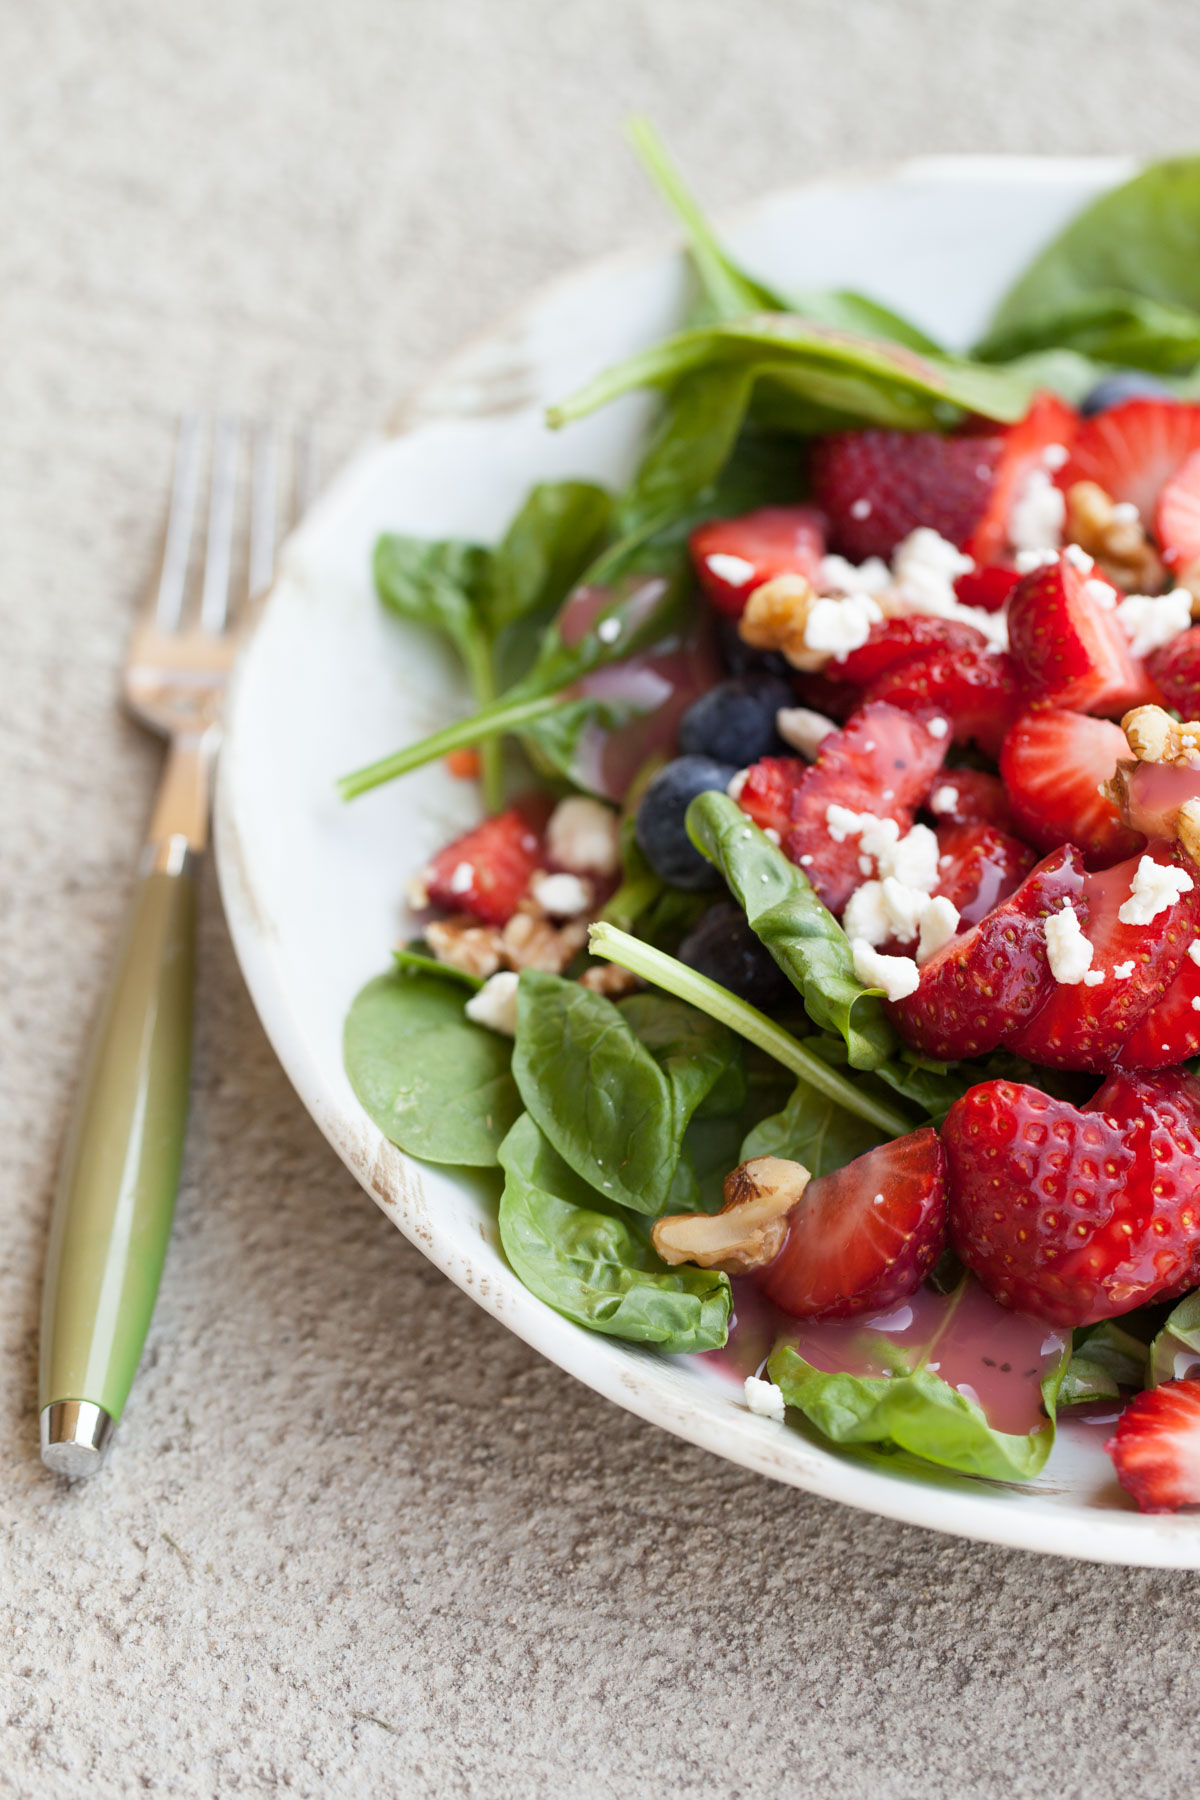 Strawberry Blueberry Spinach Salad with walnuts and feta topped with Raspberry Vinaigrette